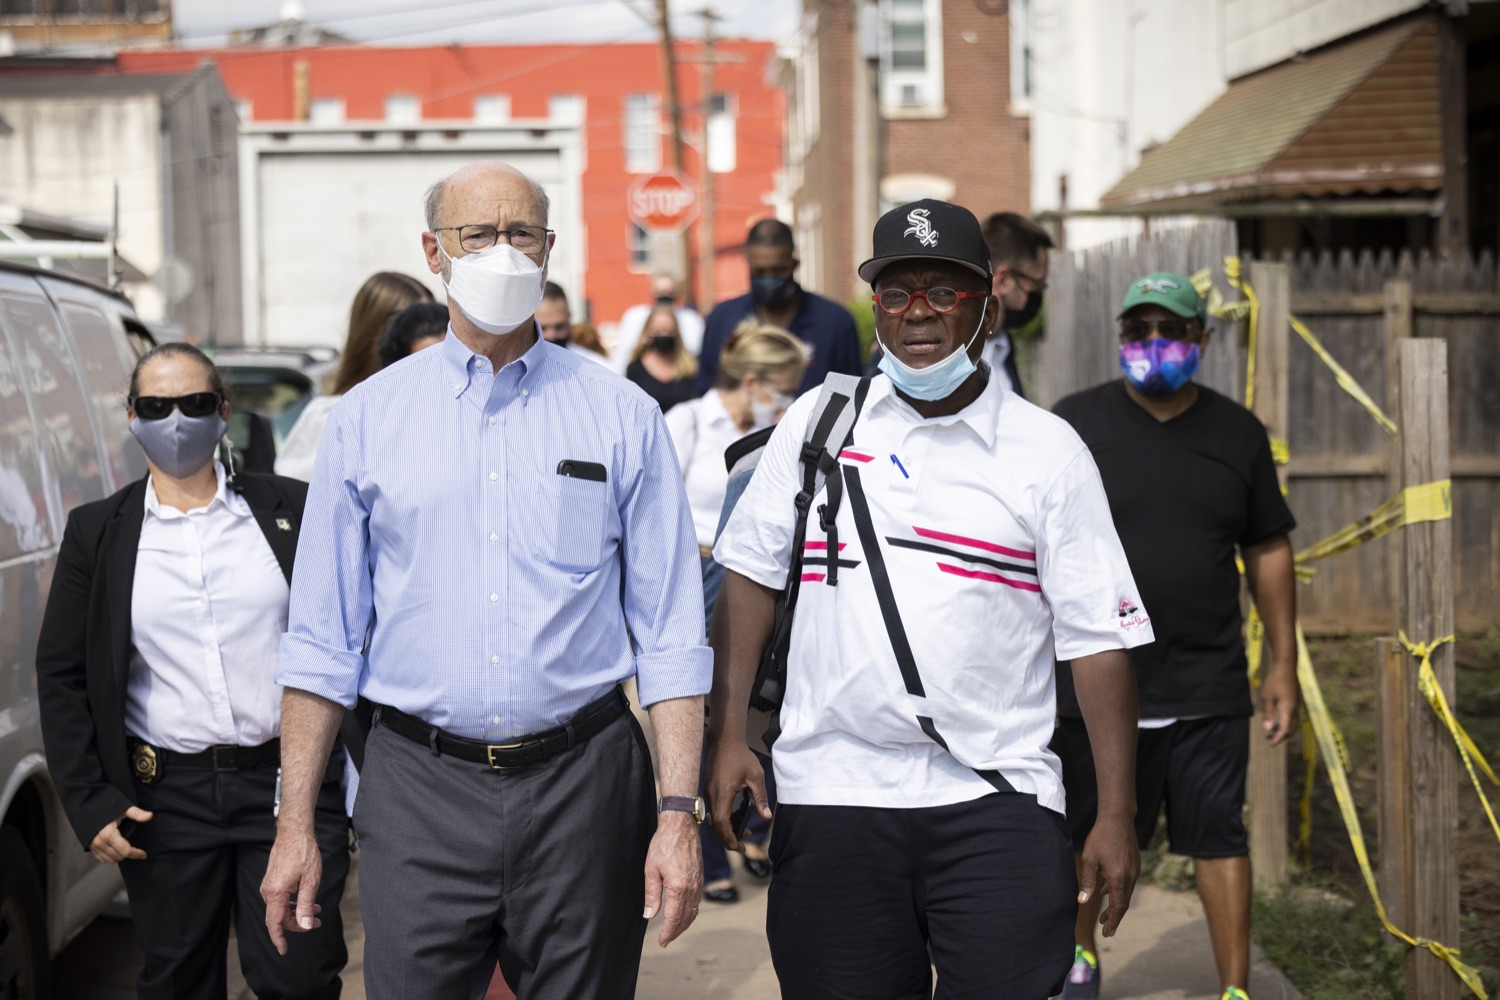 """<a href=""""https://filesource.wostreaming.net/commonwealthofpa/photo/19109_gov_stormDamage_dz_010.jpg"""" target=""""_blank"""">⇣Download Photo<br></a>Local residents showing storm damage to Pennsylvania Governor Tom Wolf.   Governor Wolf visited the Borough of Bridgeport to tour some of the areas affected by the remnants of Ida. The governor, joined by local officials, viewed and discussed the impact to damaged areas, including businesses, homes and infrastructure. Bridgeport, PA - September 08, 2021"""